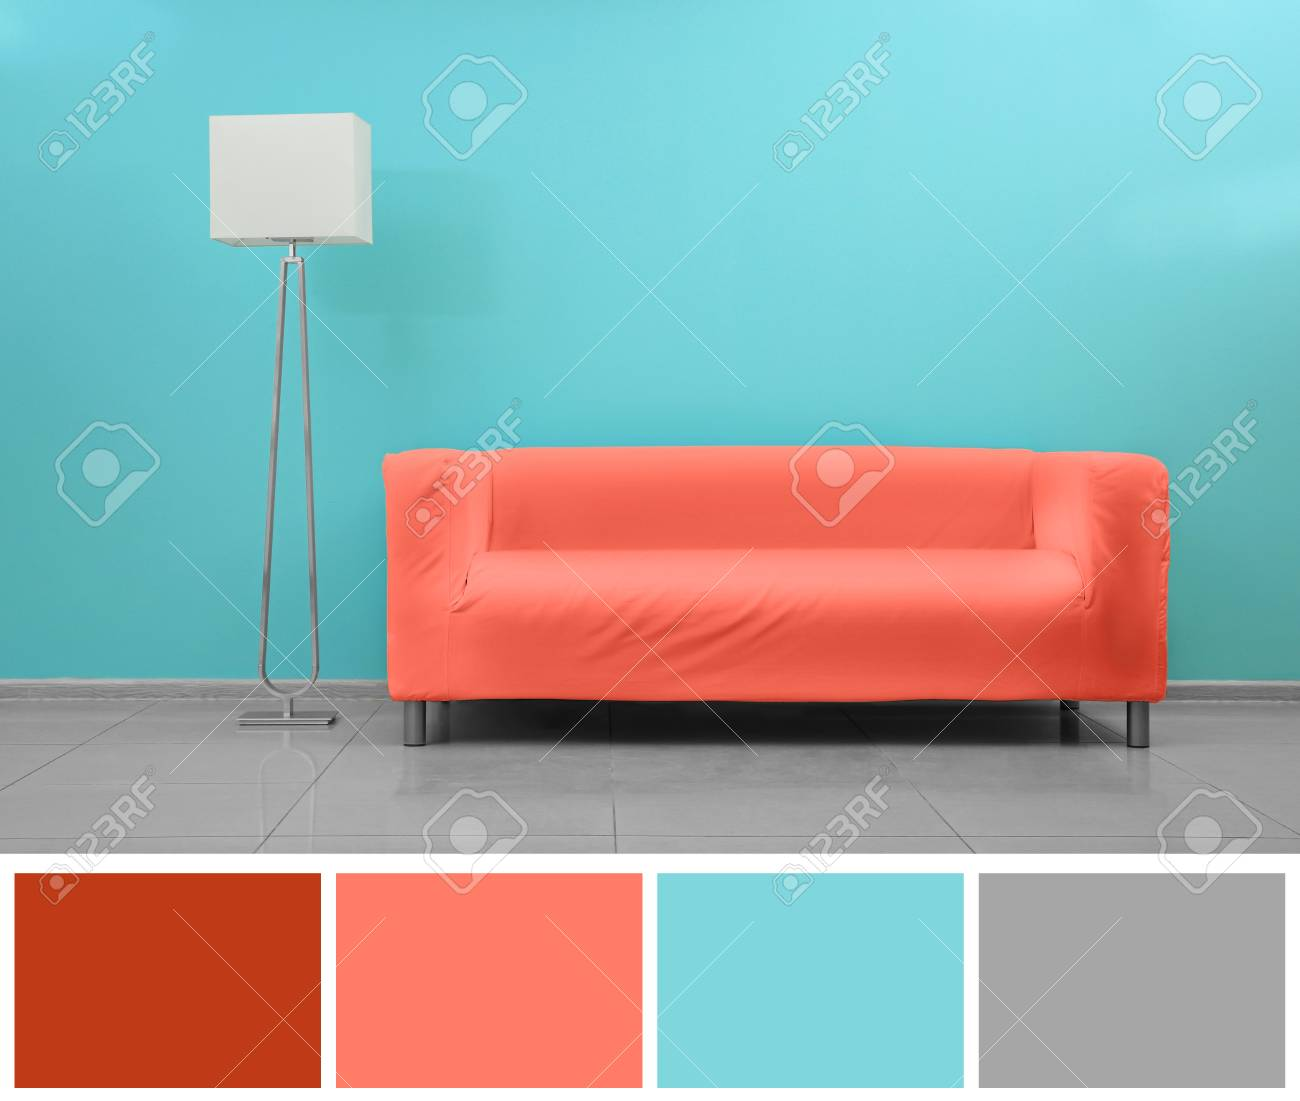 Sofa Palette Palette With Salmon Color And Modern Sofa In Empty Room